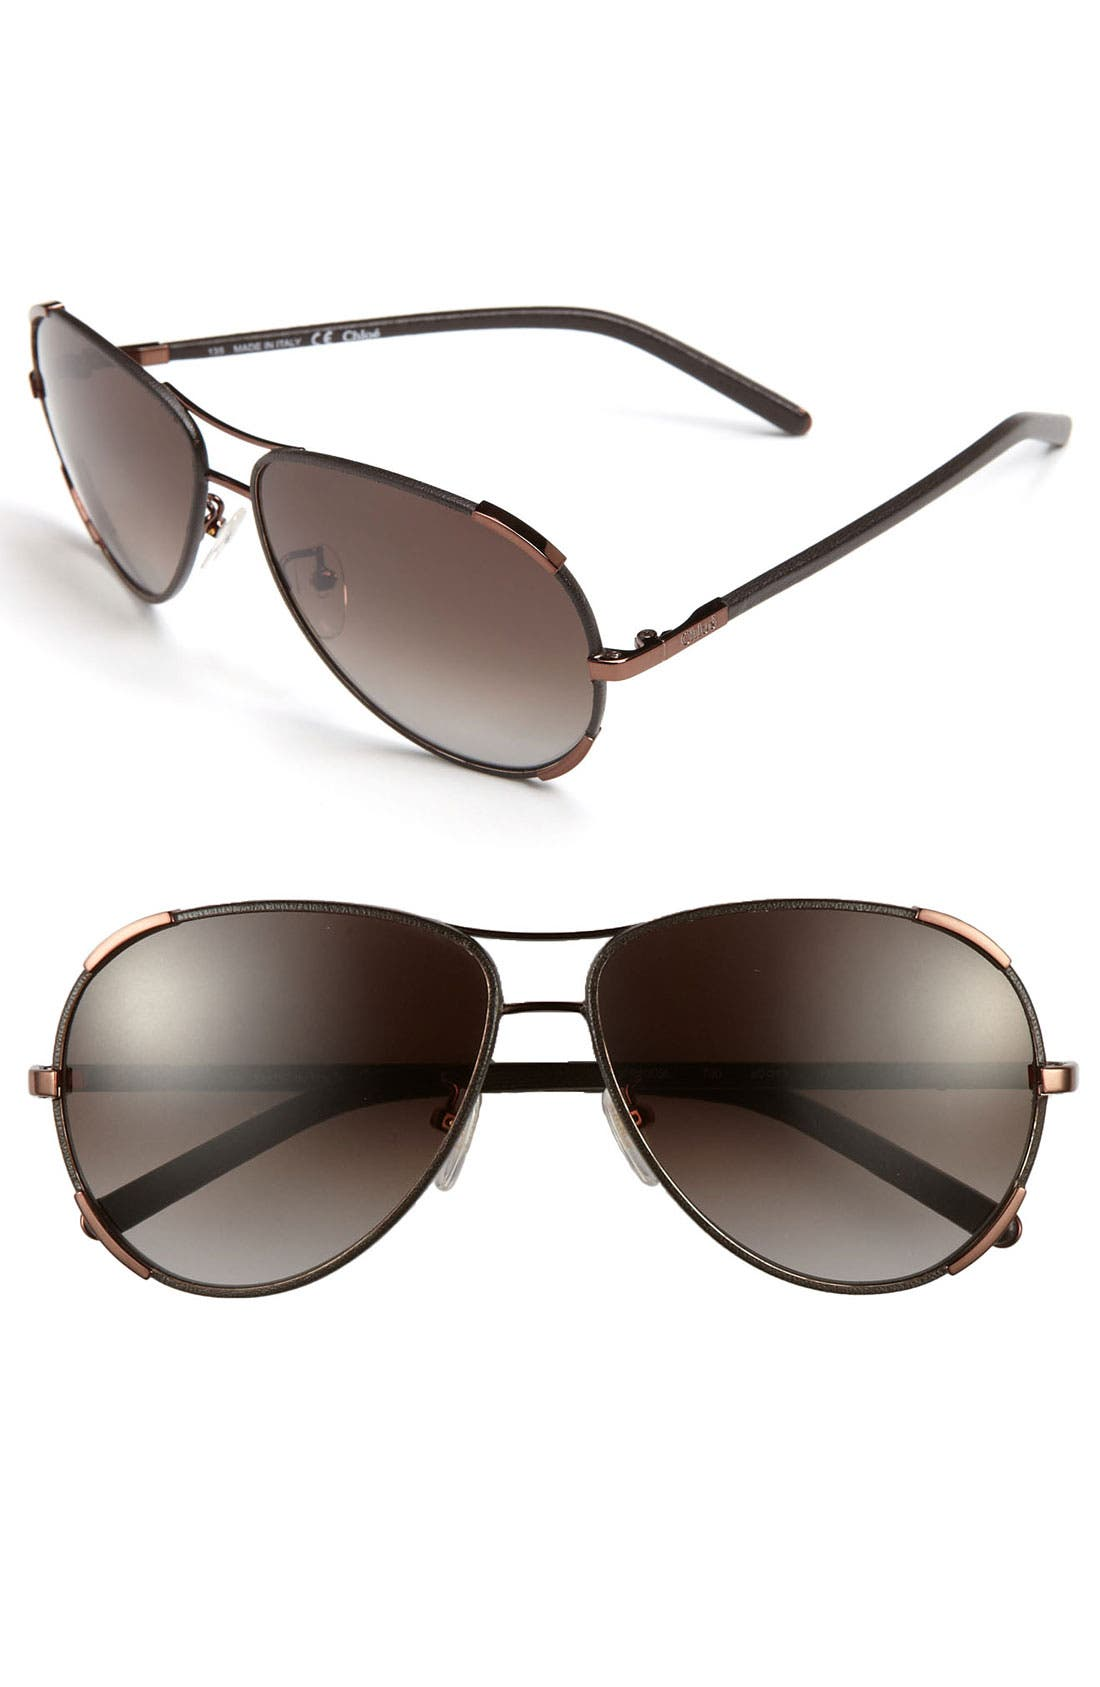 Main Image - Chloé 60mm Aviator Sunglasses